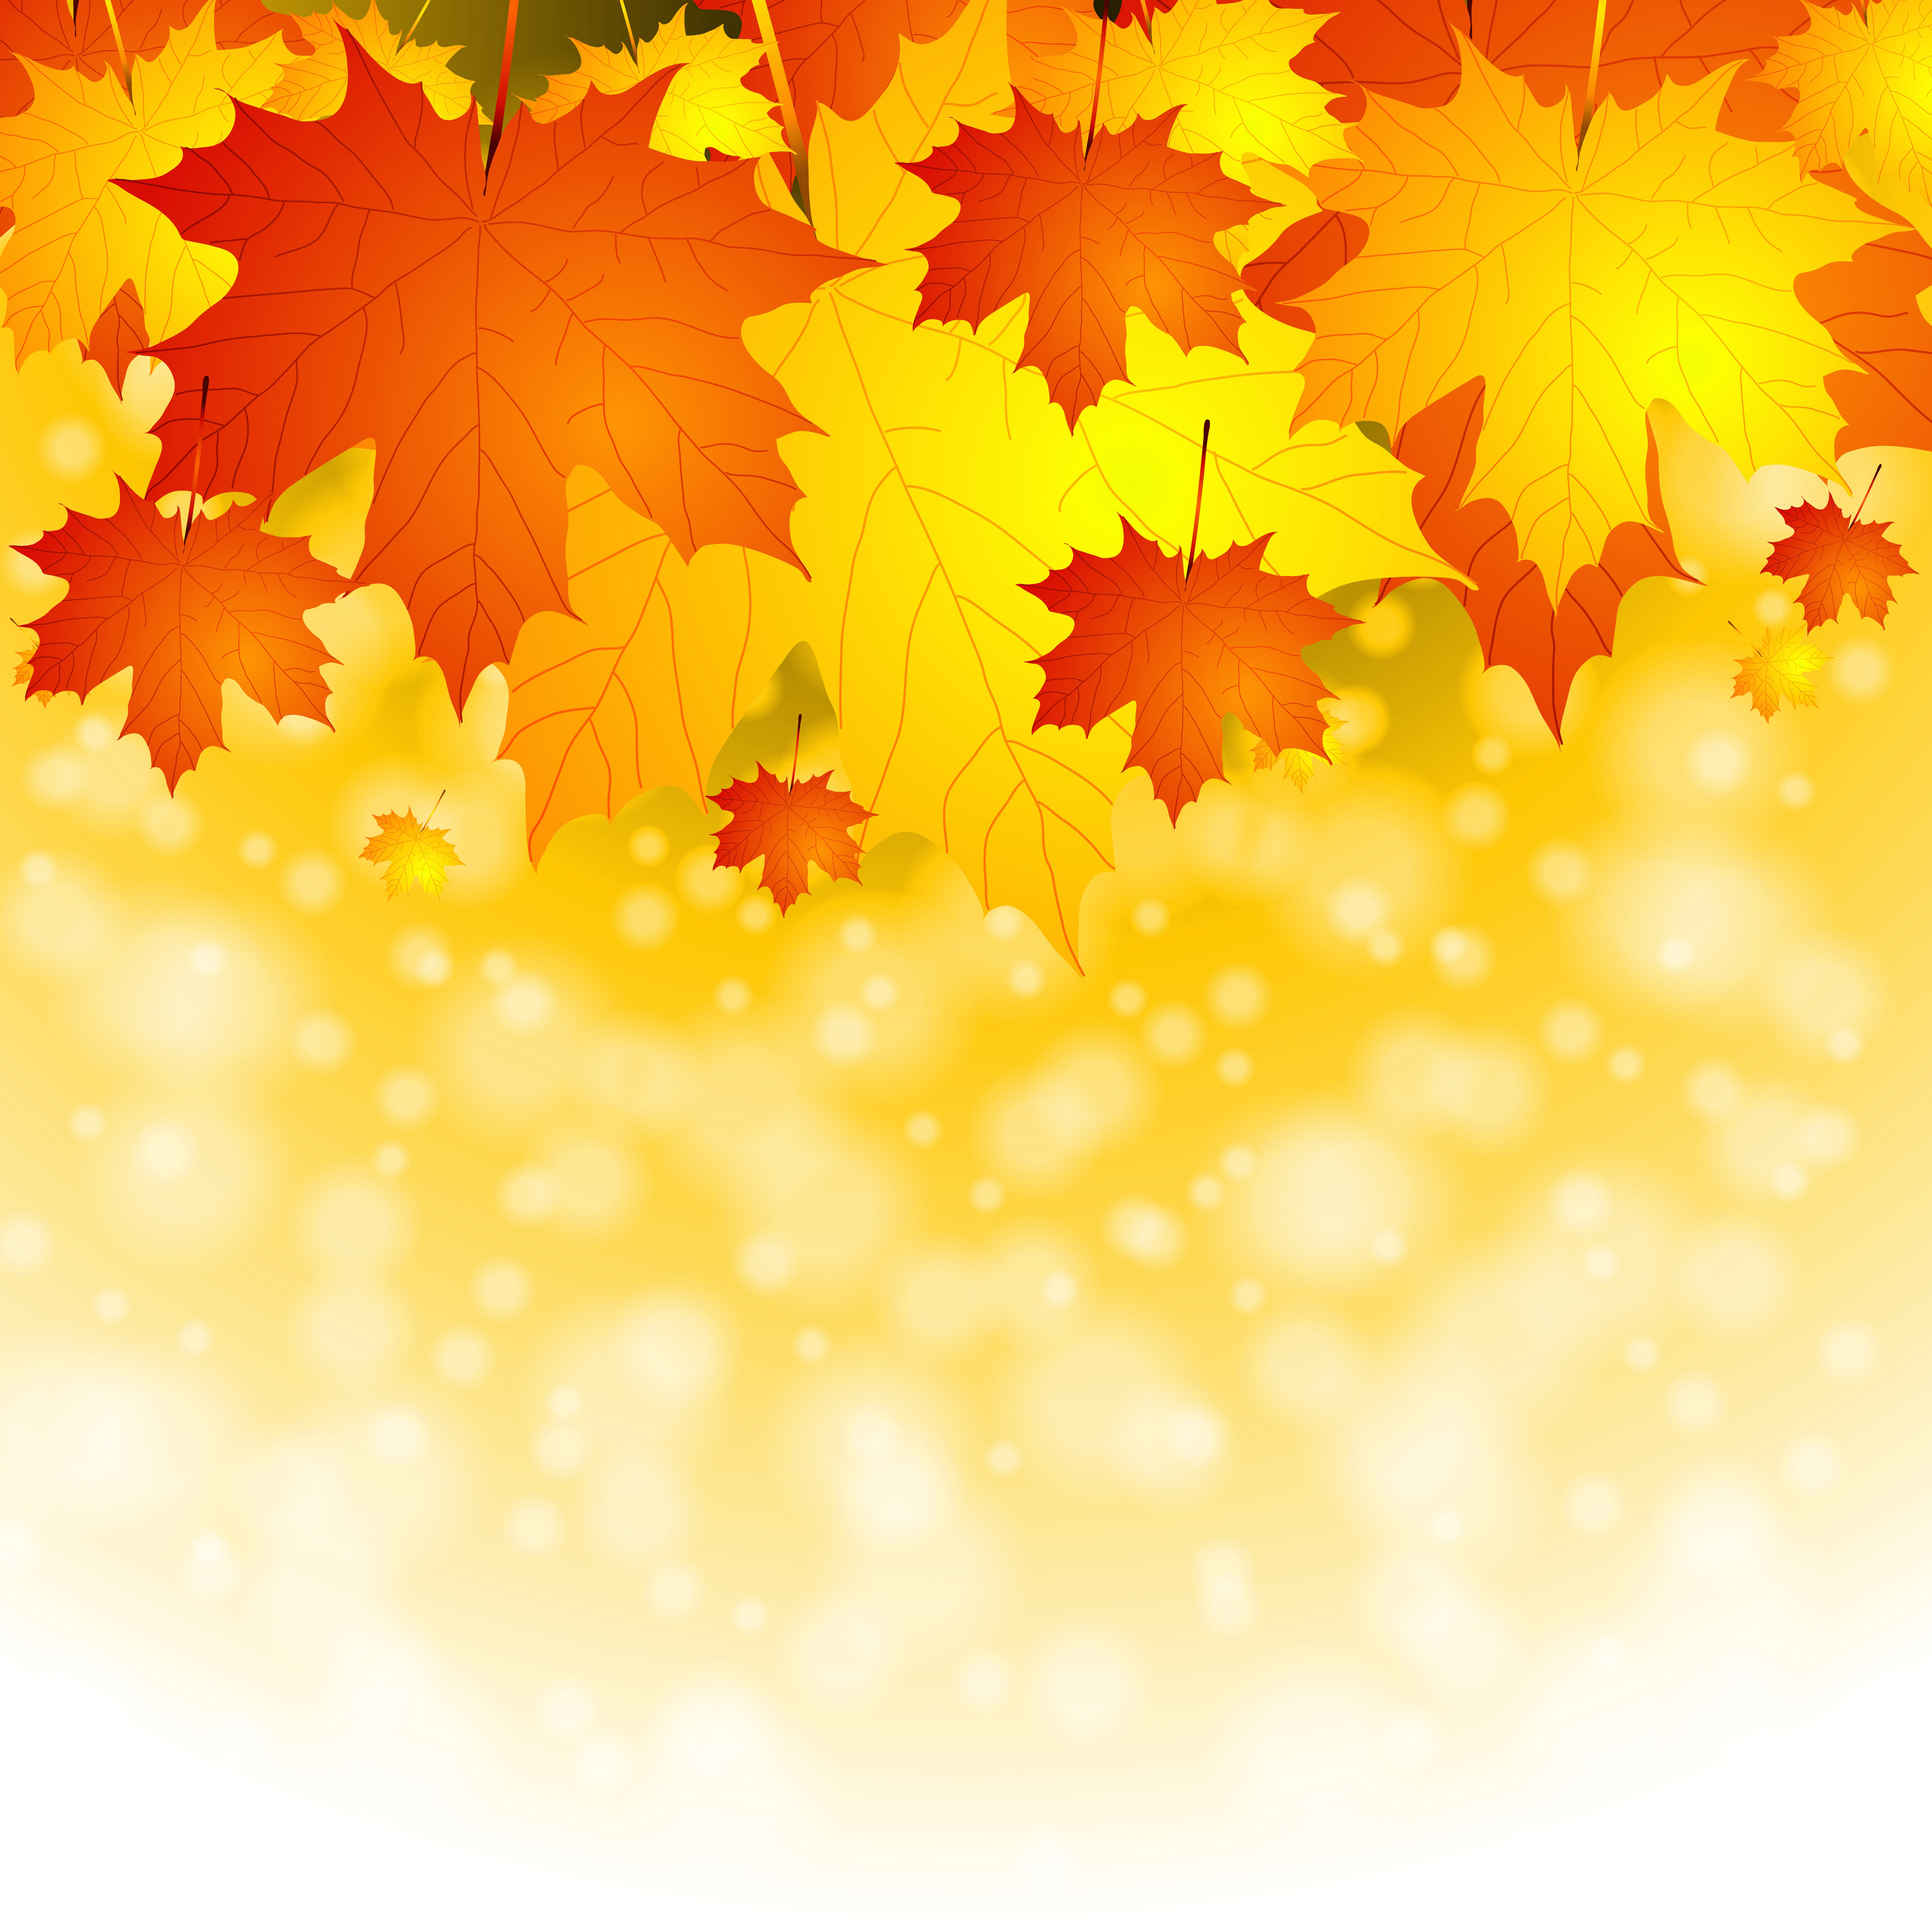 Fall leaves Background.